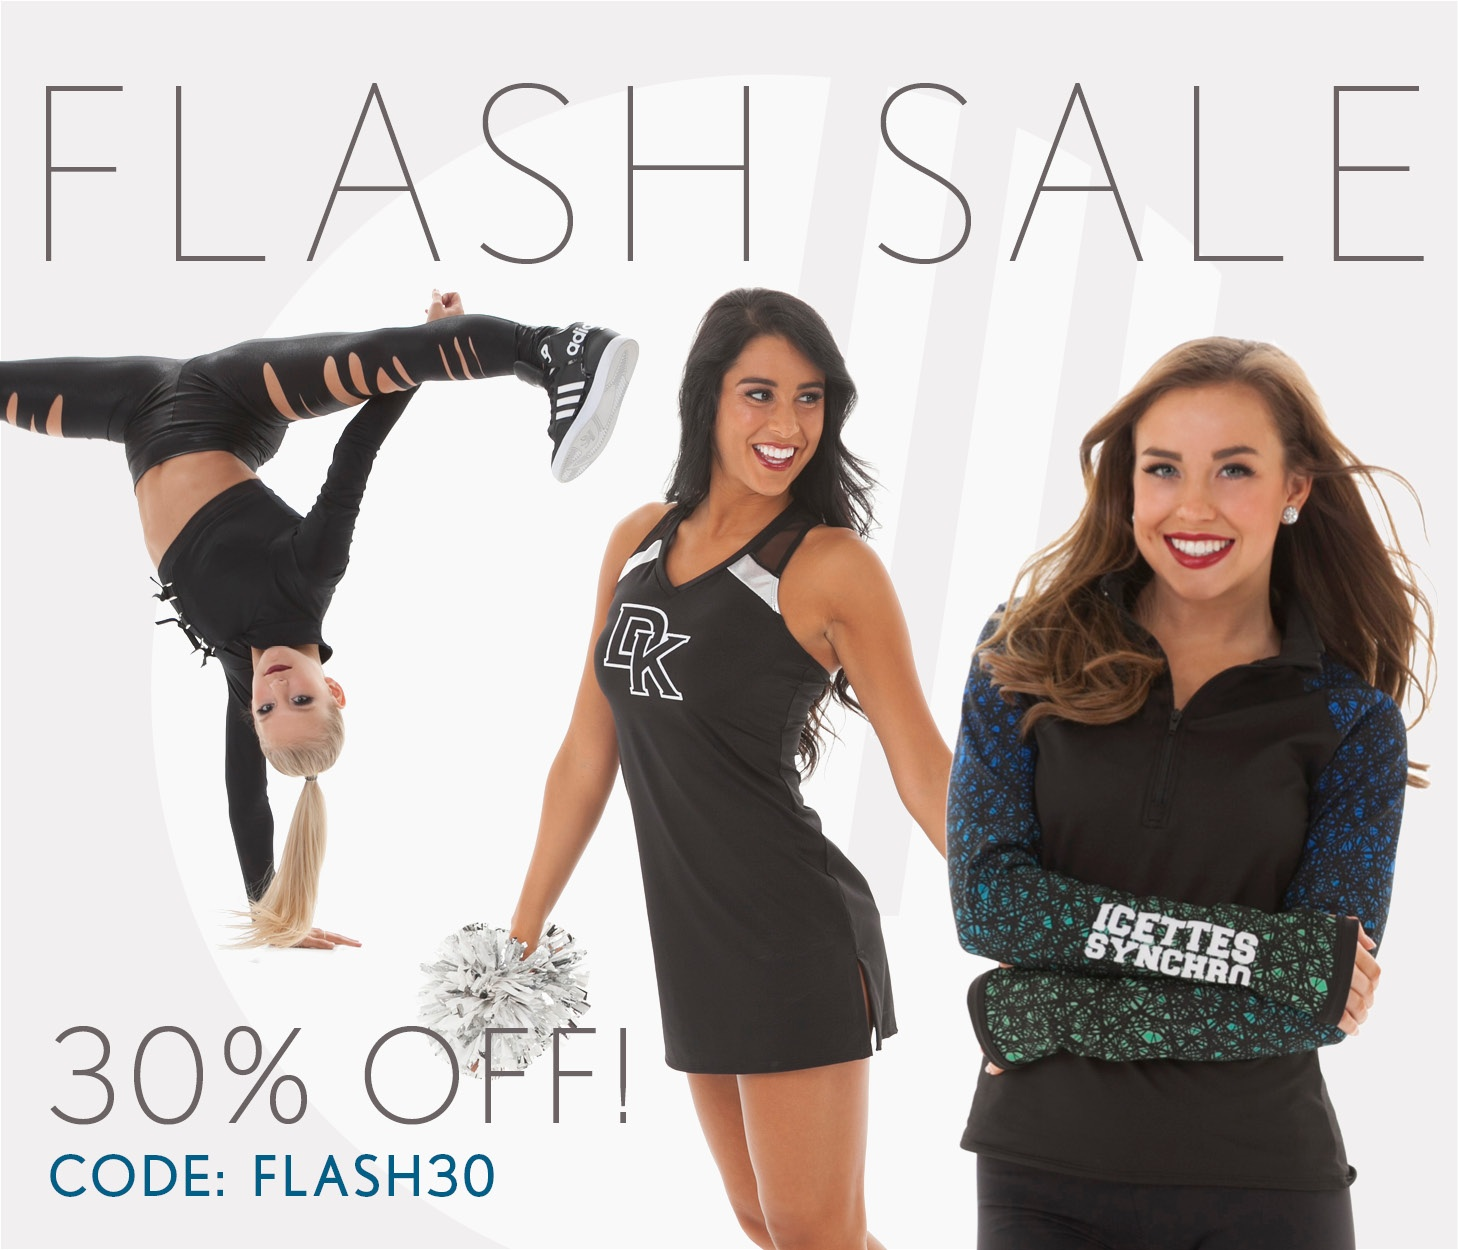 Flash Sale - 30% off with code FLASH30